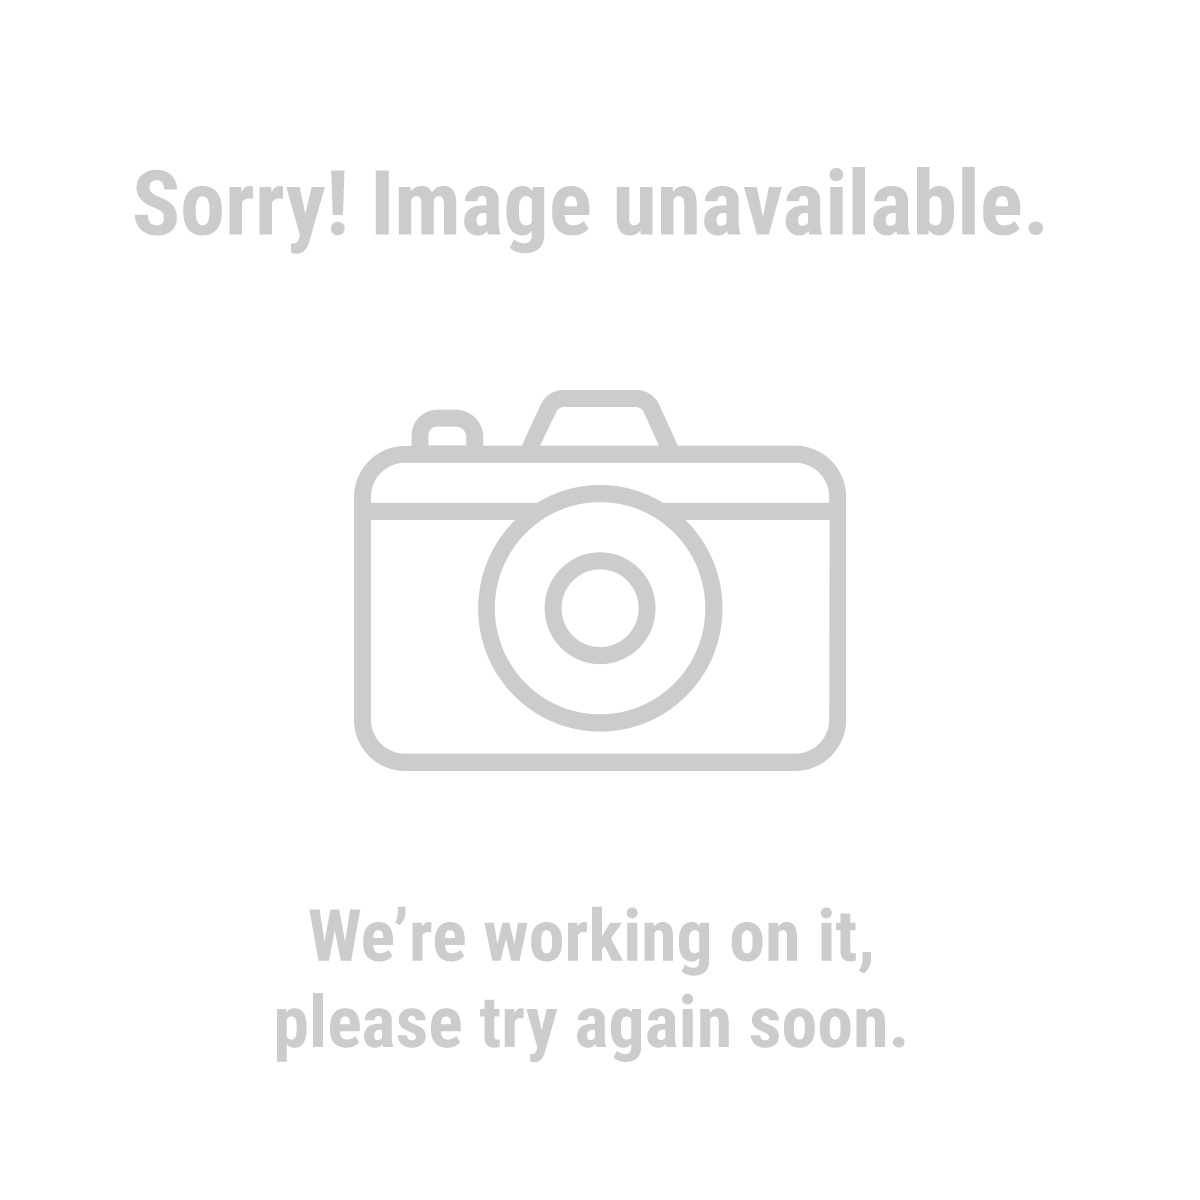 Pittsburgh 91622 8 Piece Watch Repair Kit